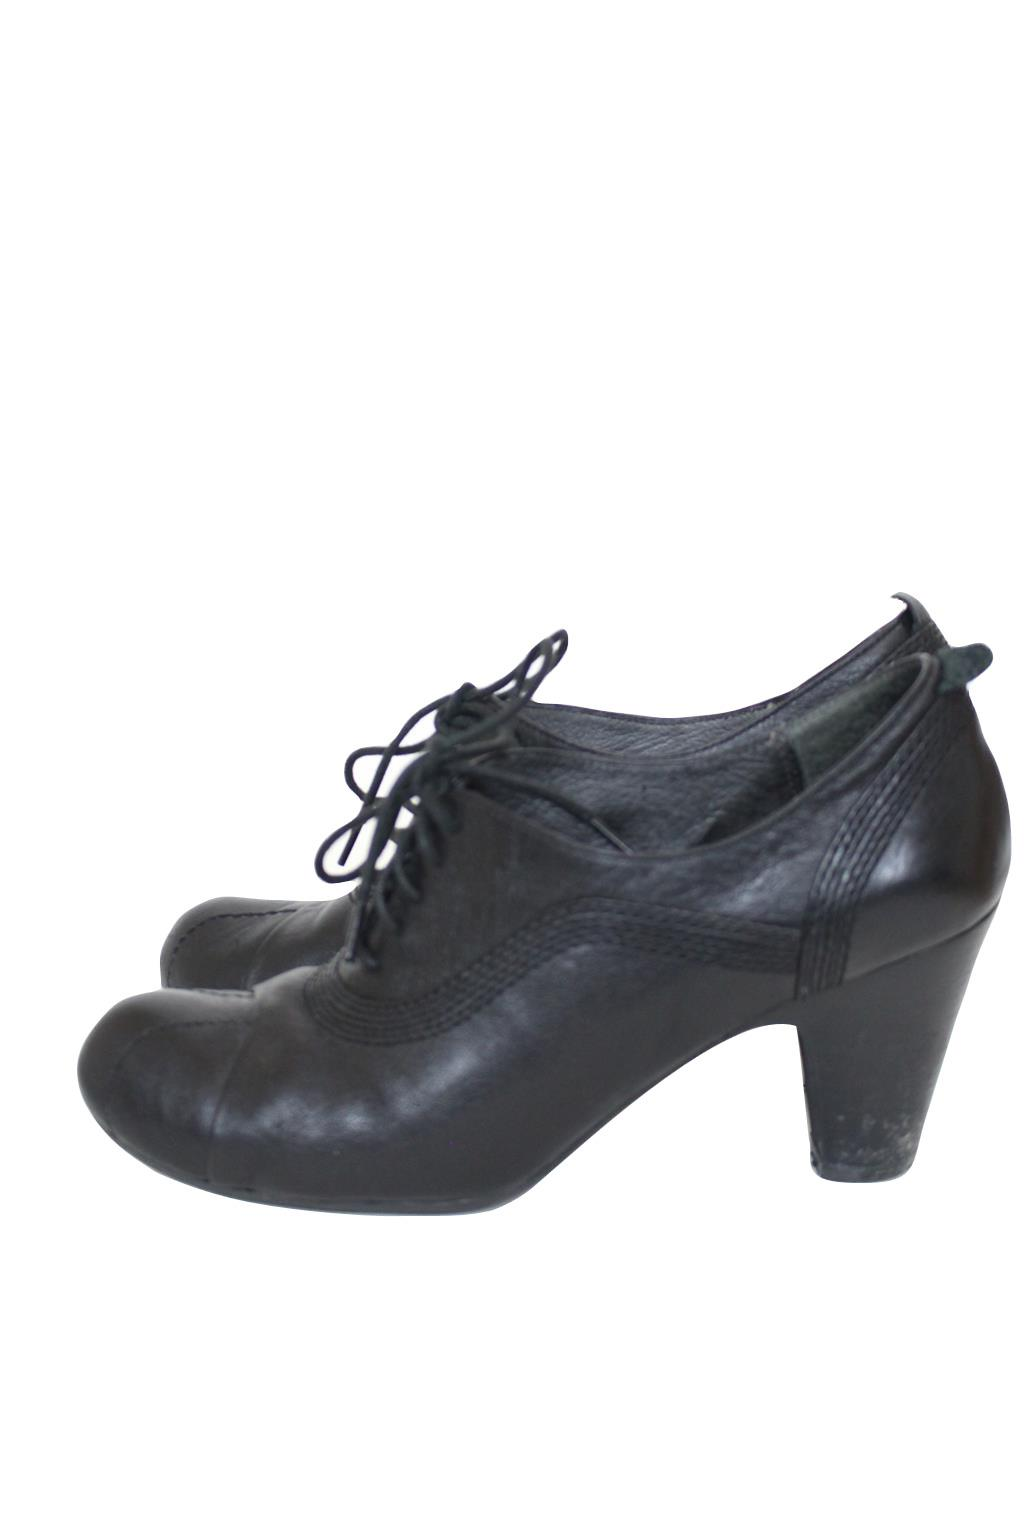 anthropologie black leather lace up booties pumps shoes